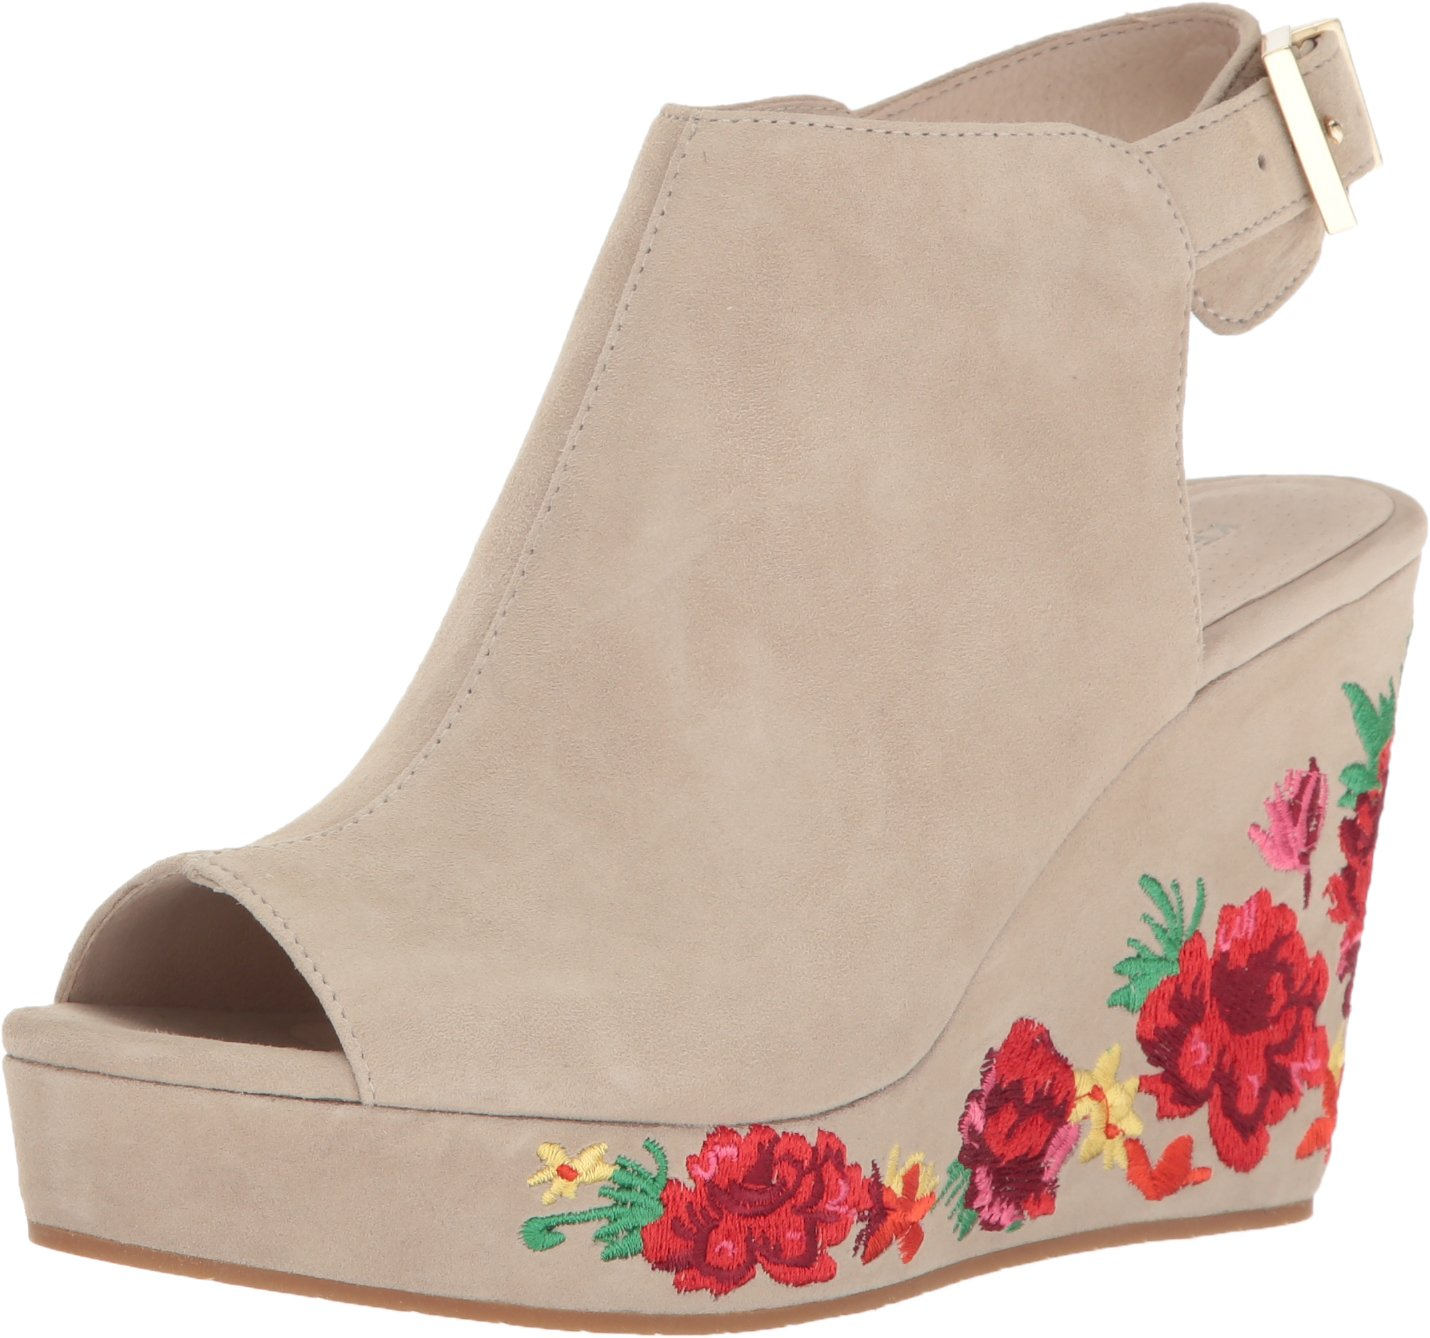 Kenneth Cole New York Women's Olani Wedge Sandal, Taupe, 8 M US